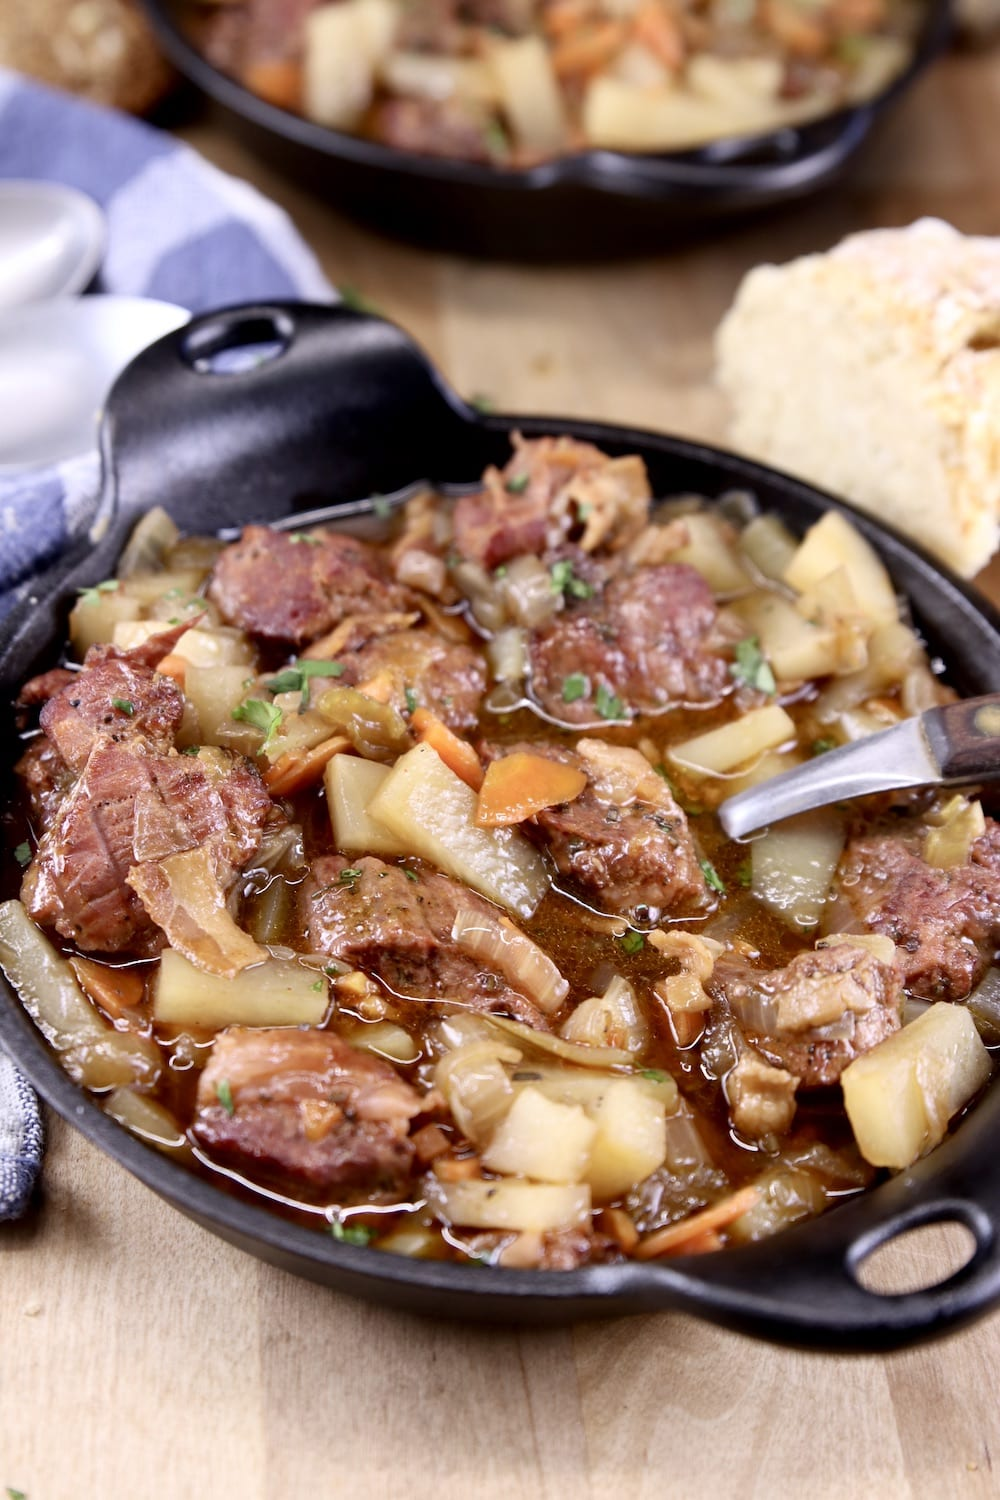 Mini cast iron skillet with beef stew